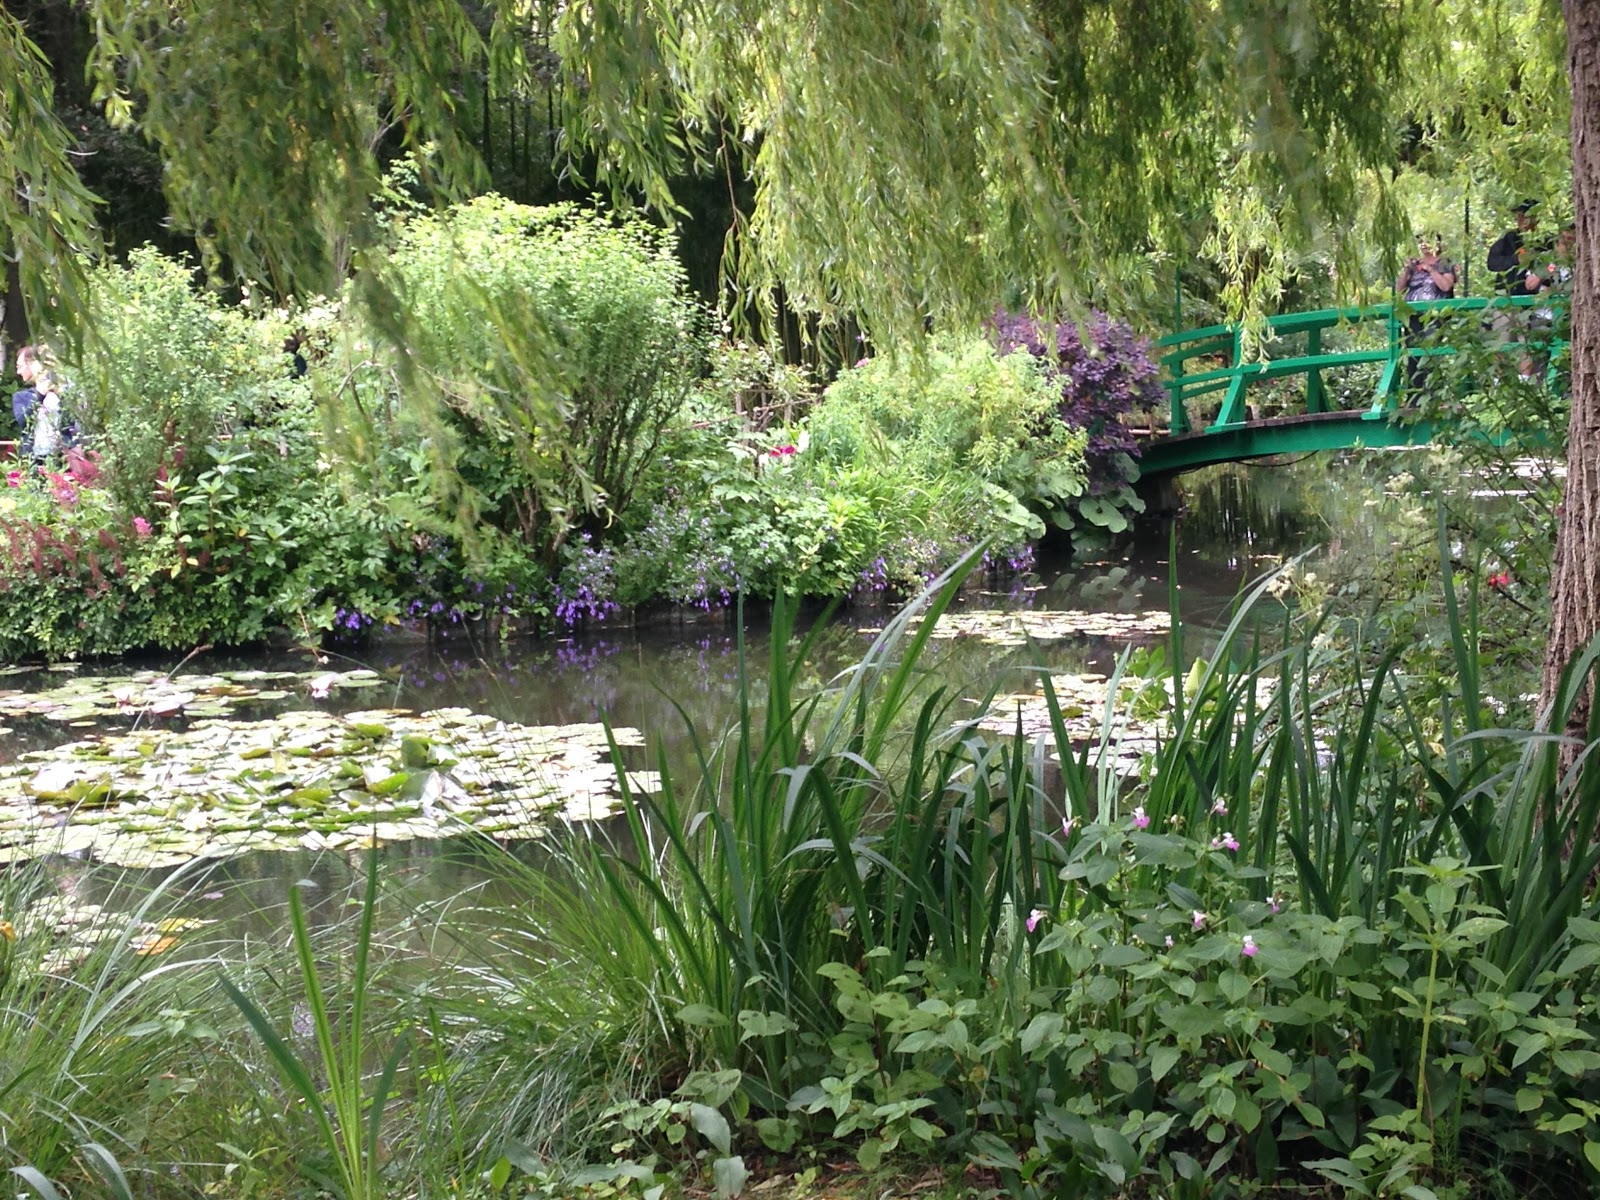 claude monet garden in giverny. Green wooden bridge with tourist on it, overlooking green pond surrounded by trees and bushes on a sunny day in france.